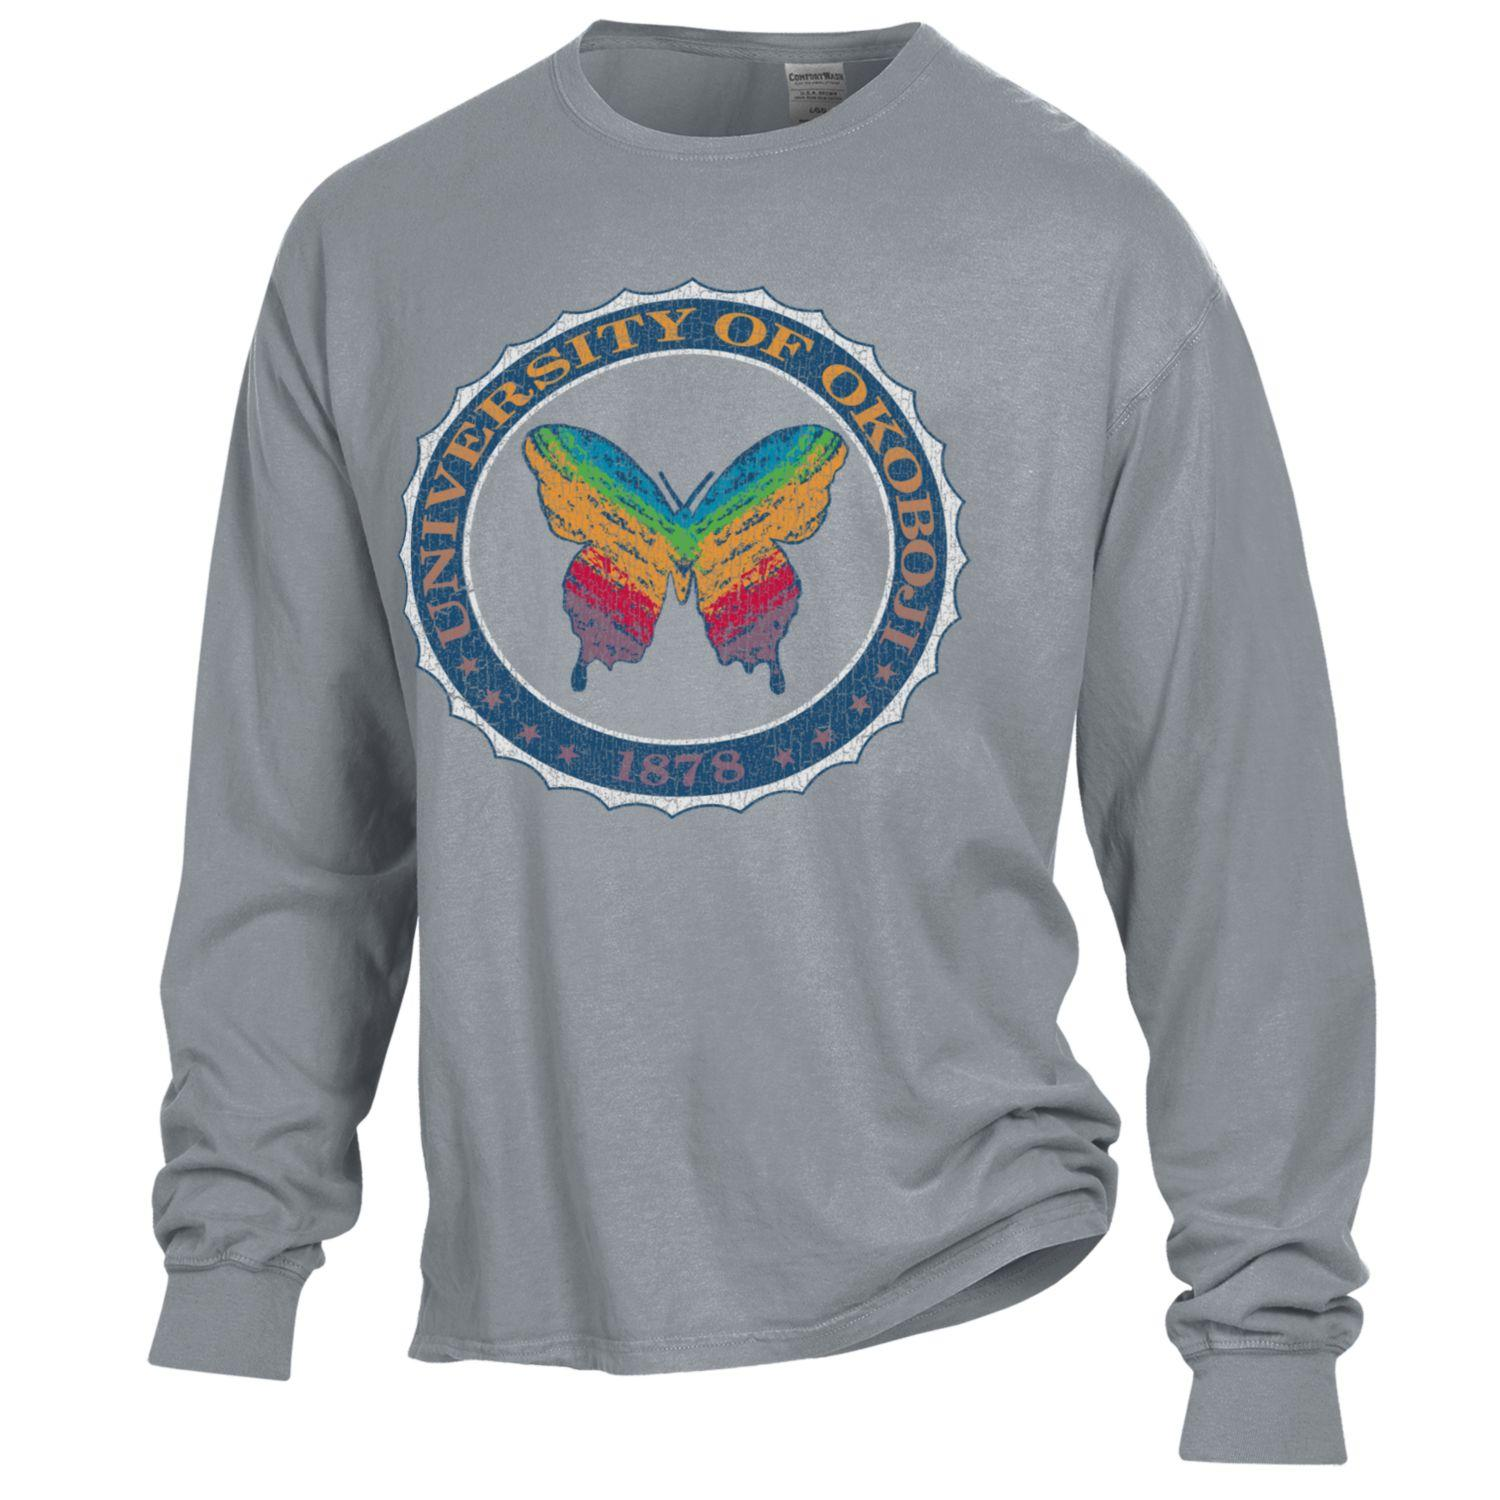 OkoButterfly Tee - Garment Dyed Long Sleeve - Concrete Grey